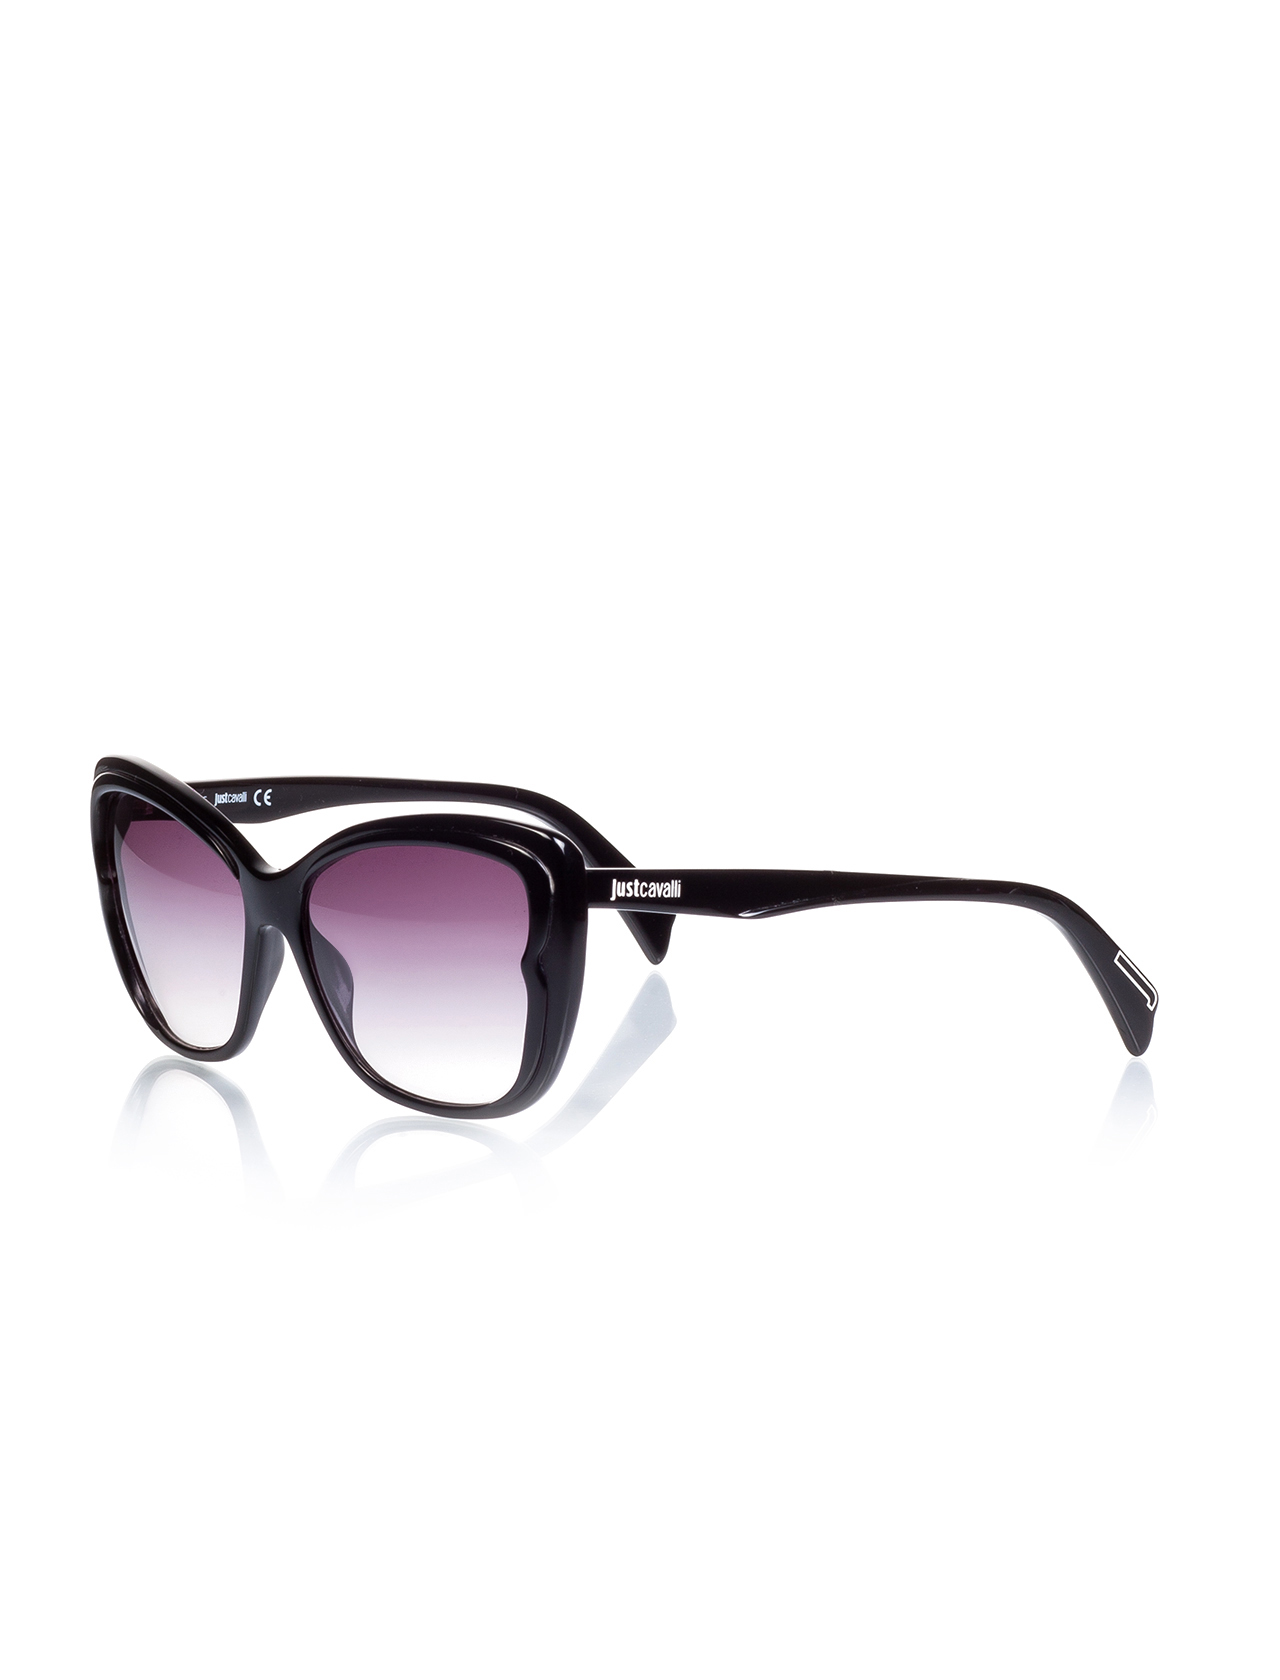 Women's sunglasses jc 719 01a bone black organic oval aval 58-16-140 just cavalli